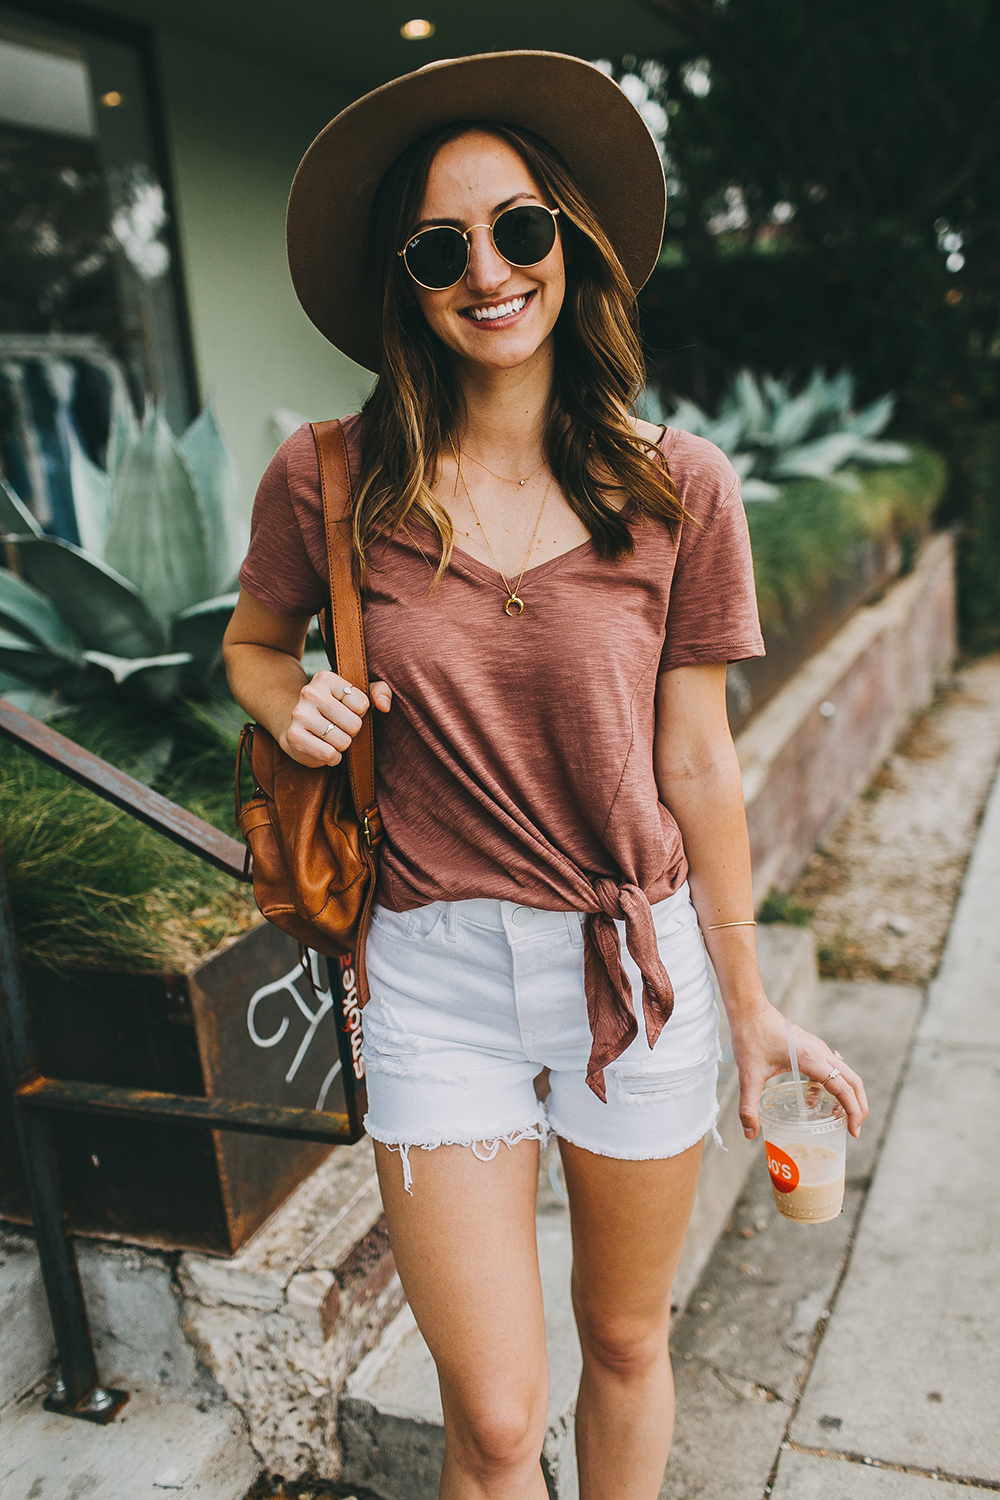 livvyland-blog-olivia-watson-express-one-eleven-knot-front-v-neck-tee-austin-texas-fashion-blogger-3